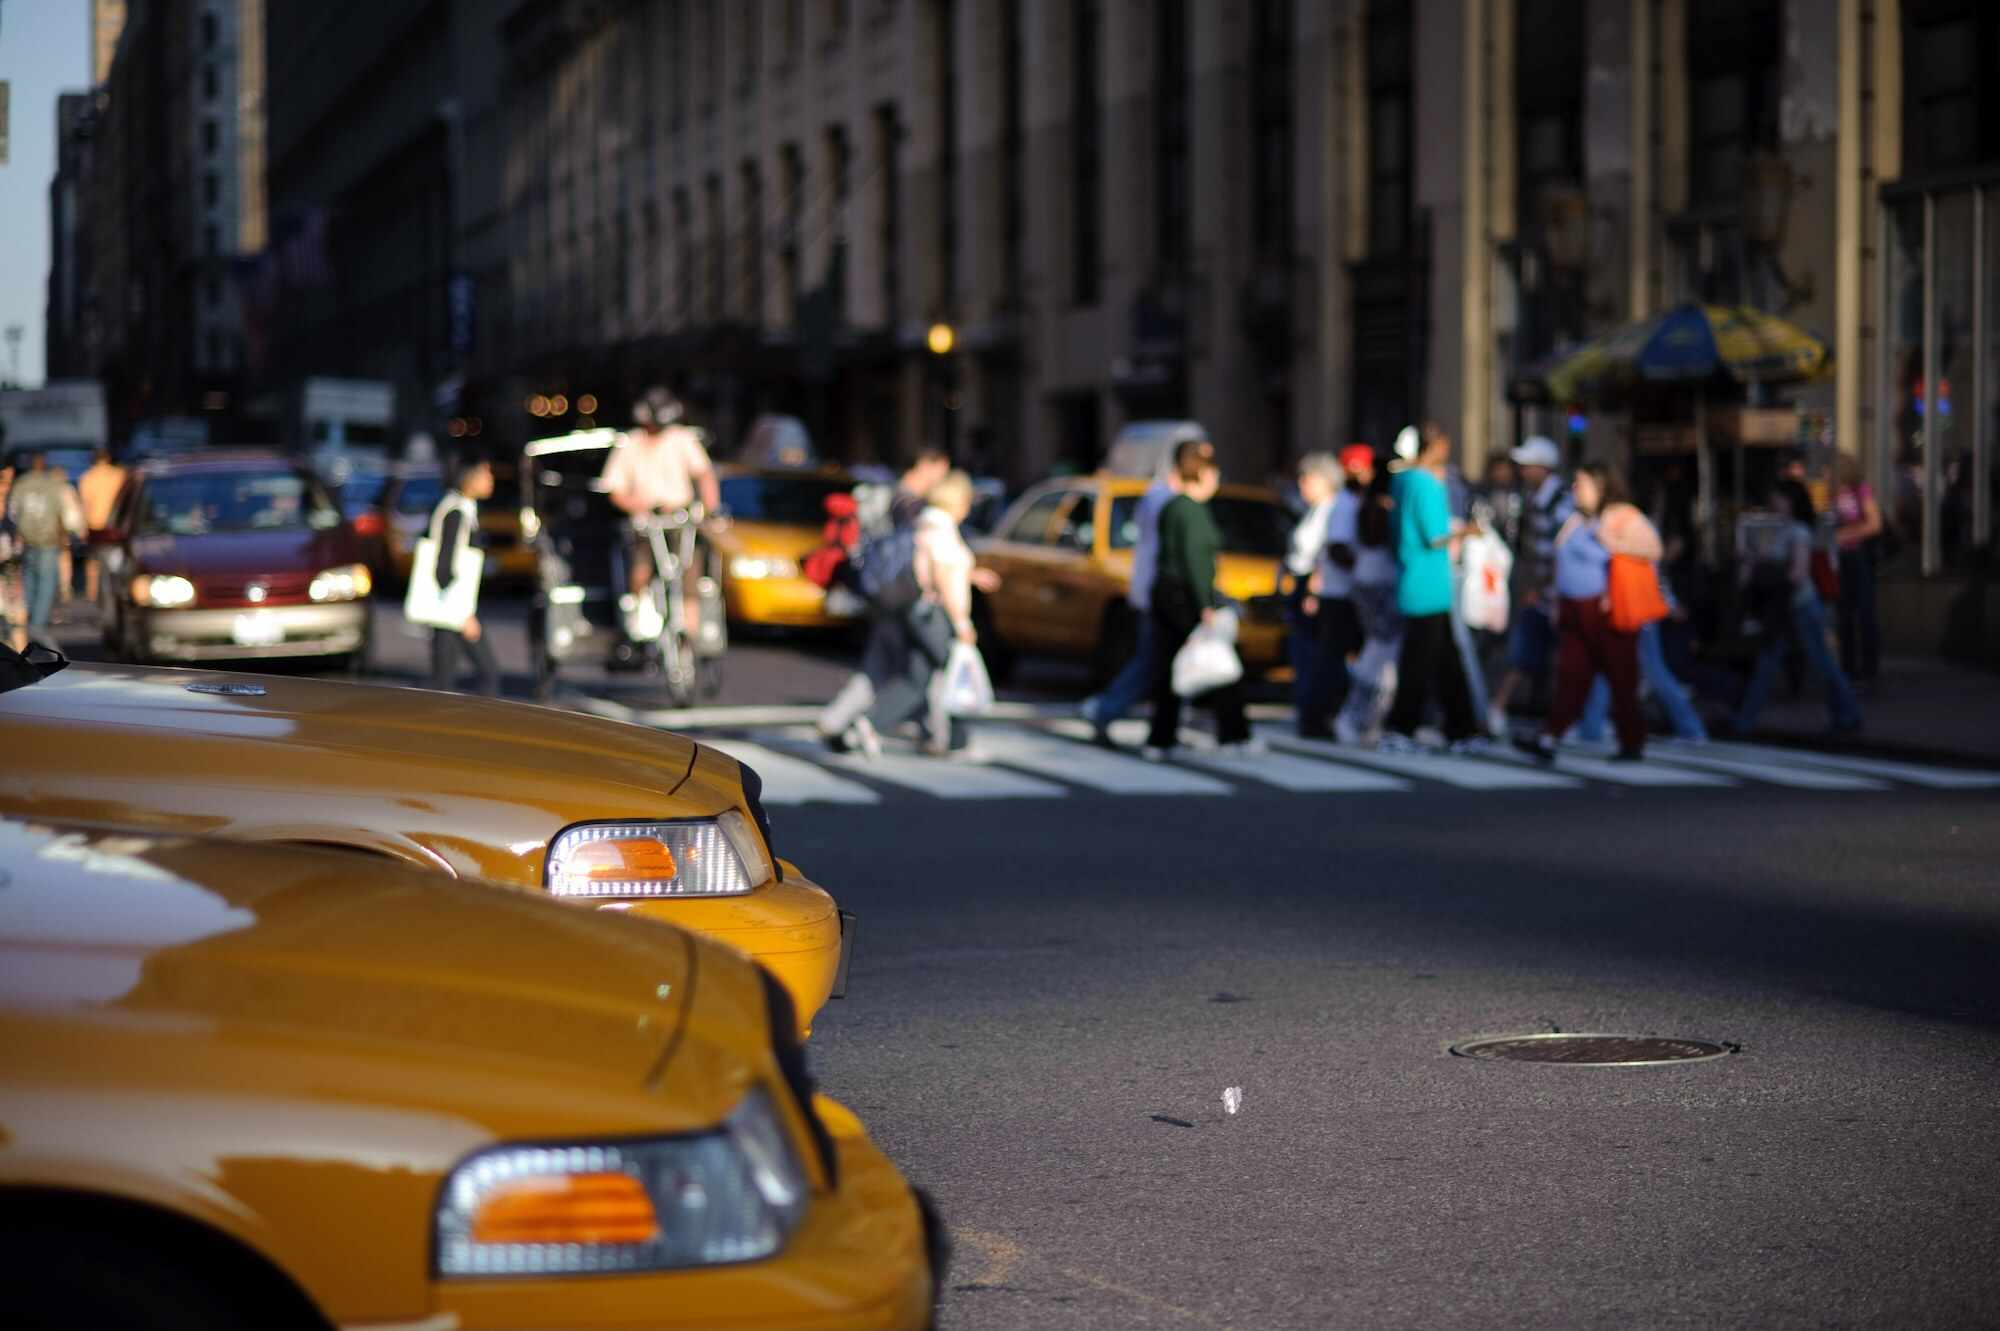 Pair of taxis waiting at an intersection while people cross the street in the background